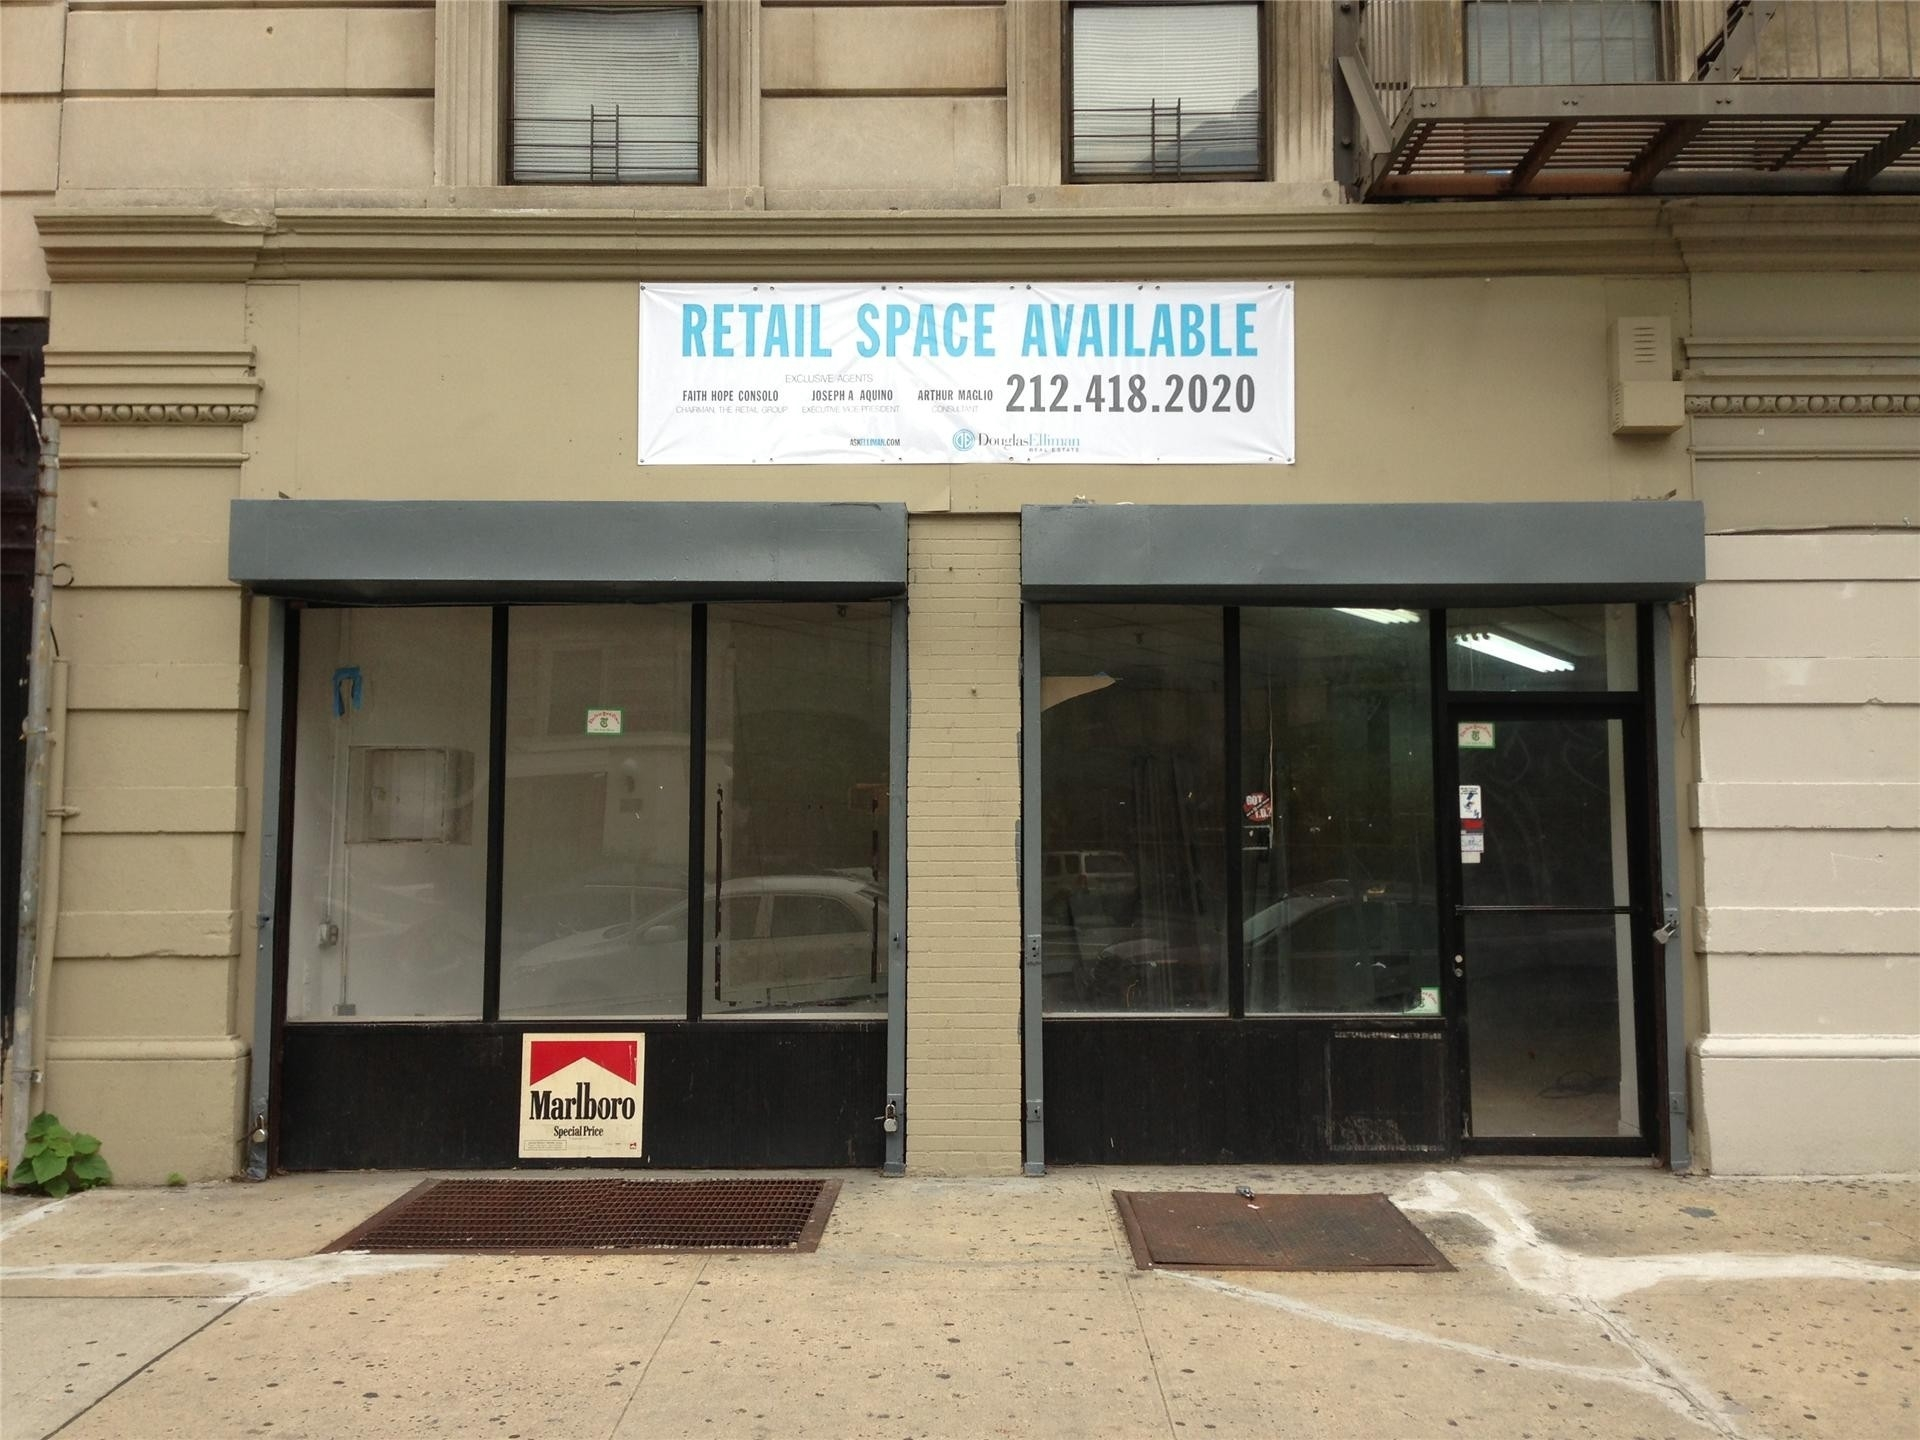 Retail Leases at 71 St Nicholas Avenue, COMMERCIAL New York